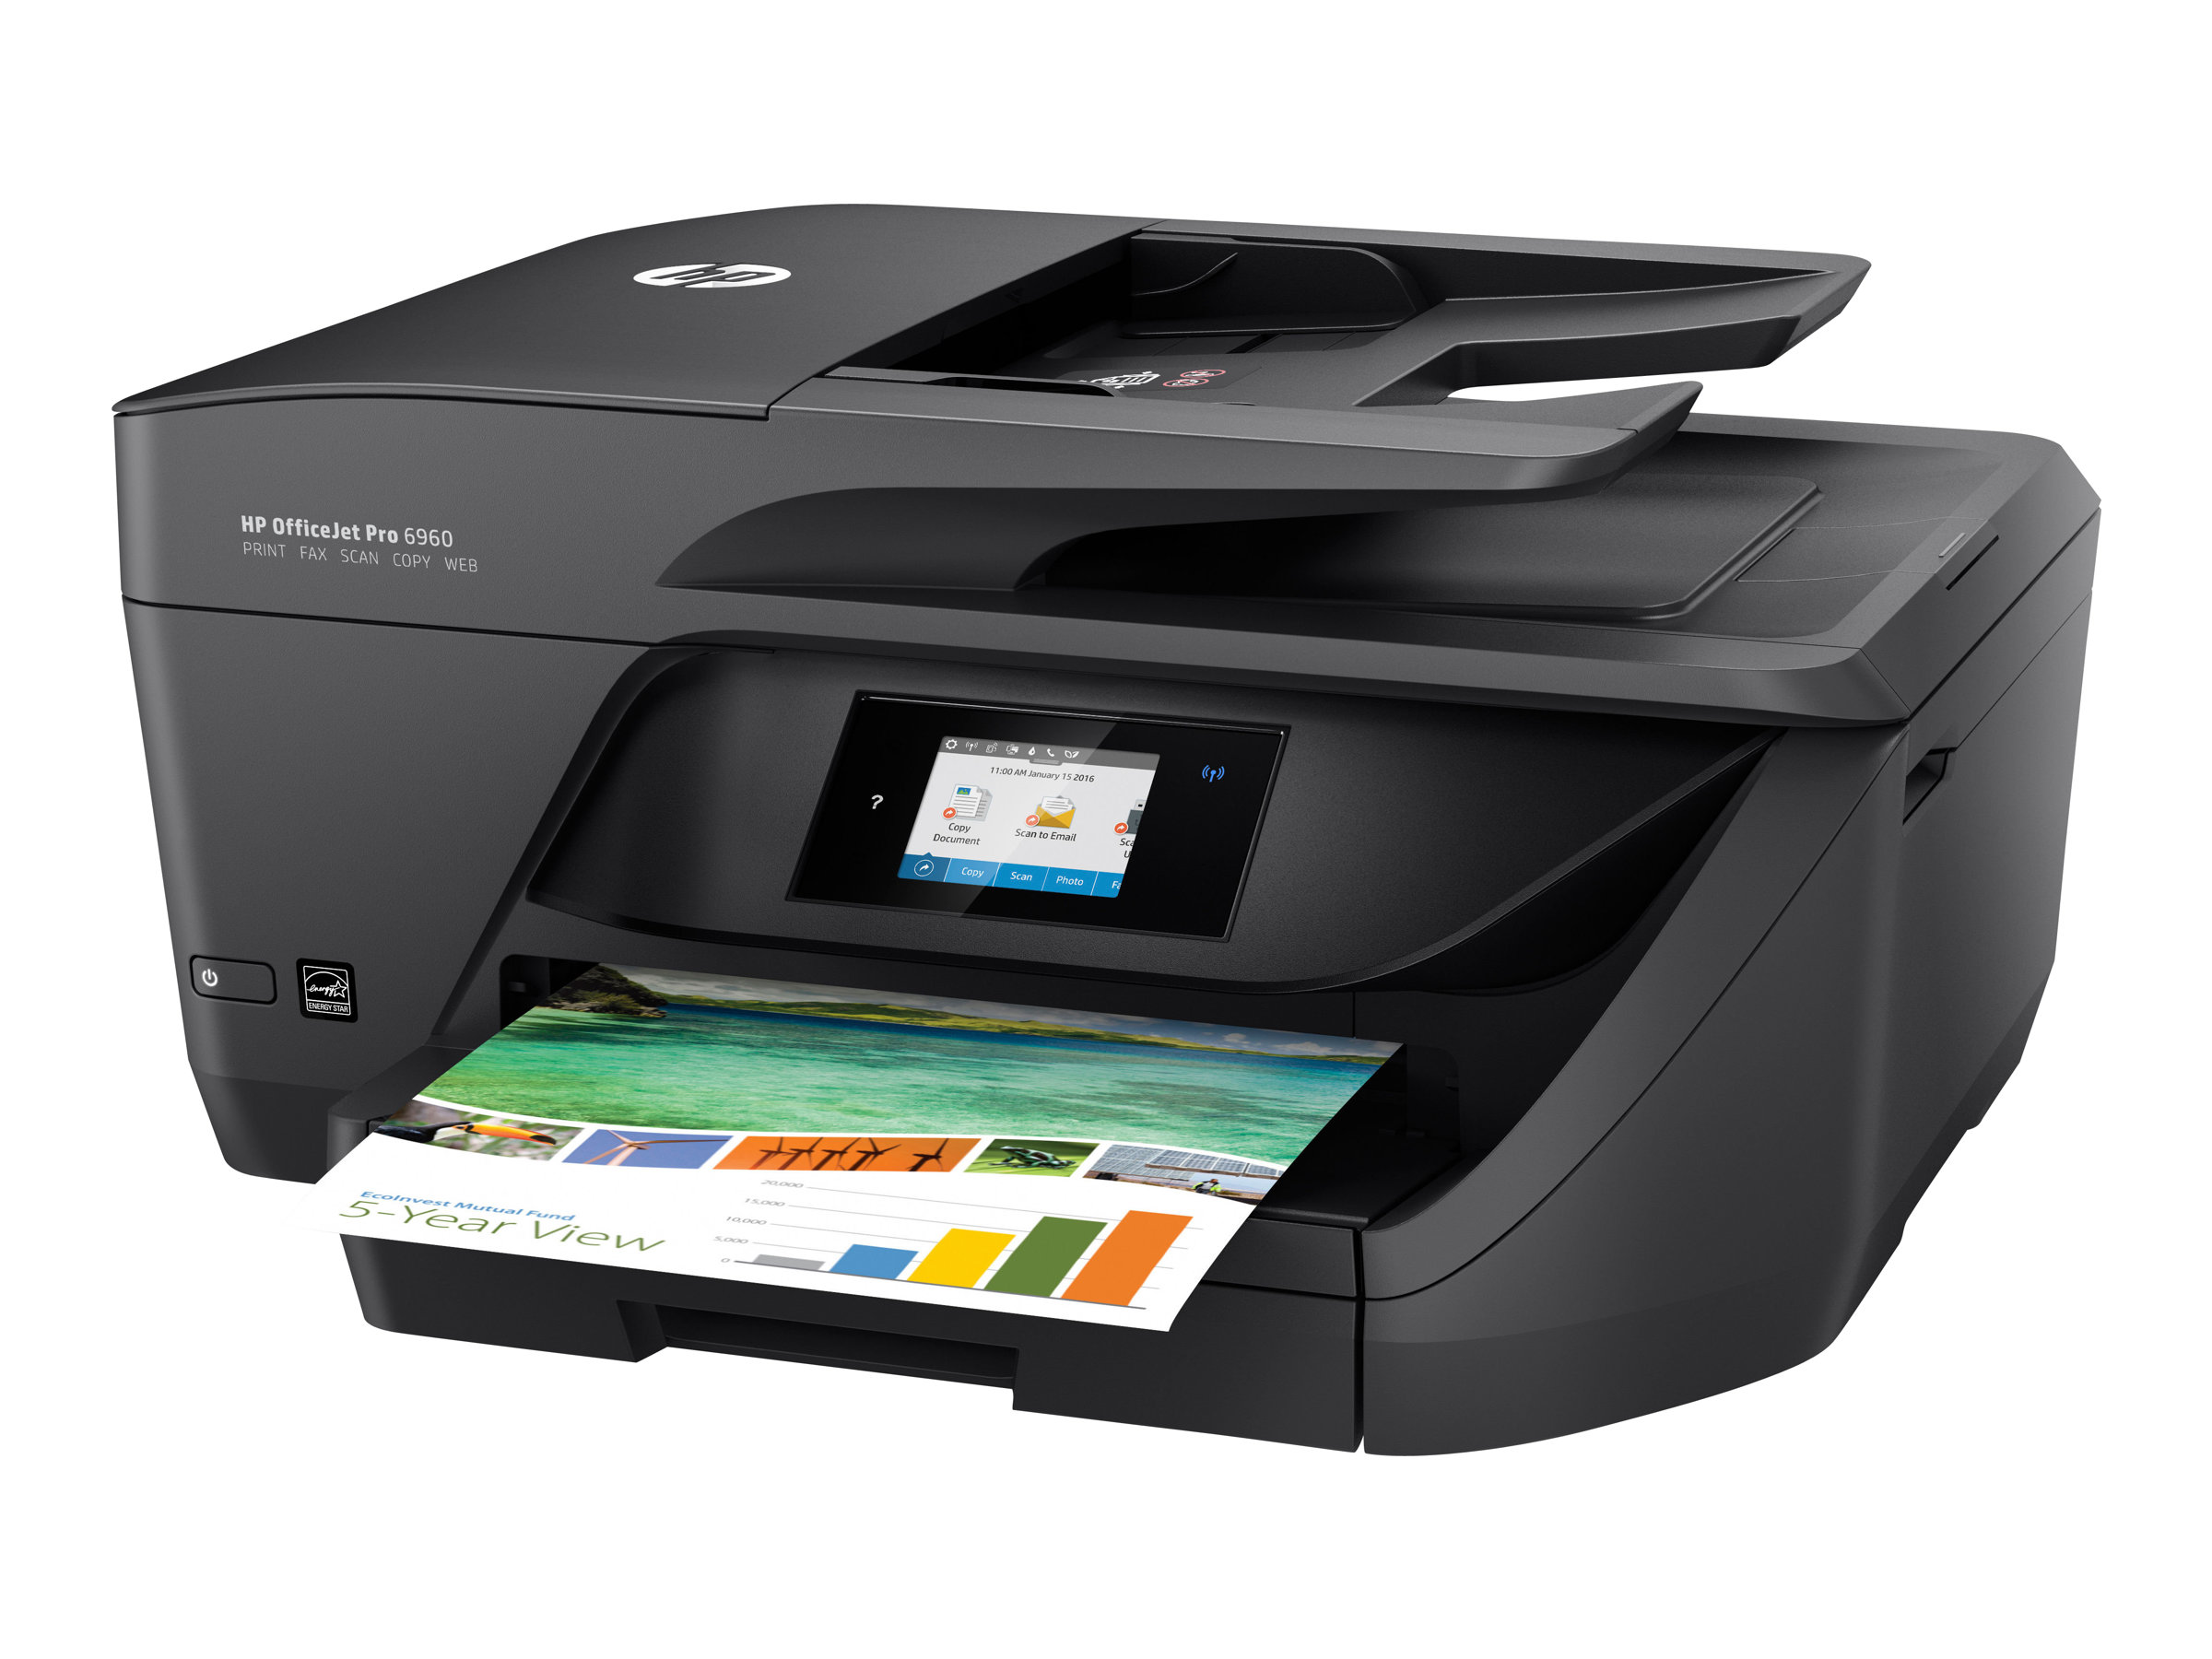 Imprimante HP Color Officejet Pro 6960 All-in-One vue 3/4 droite